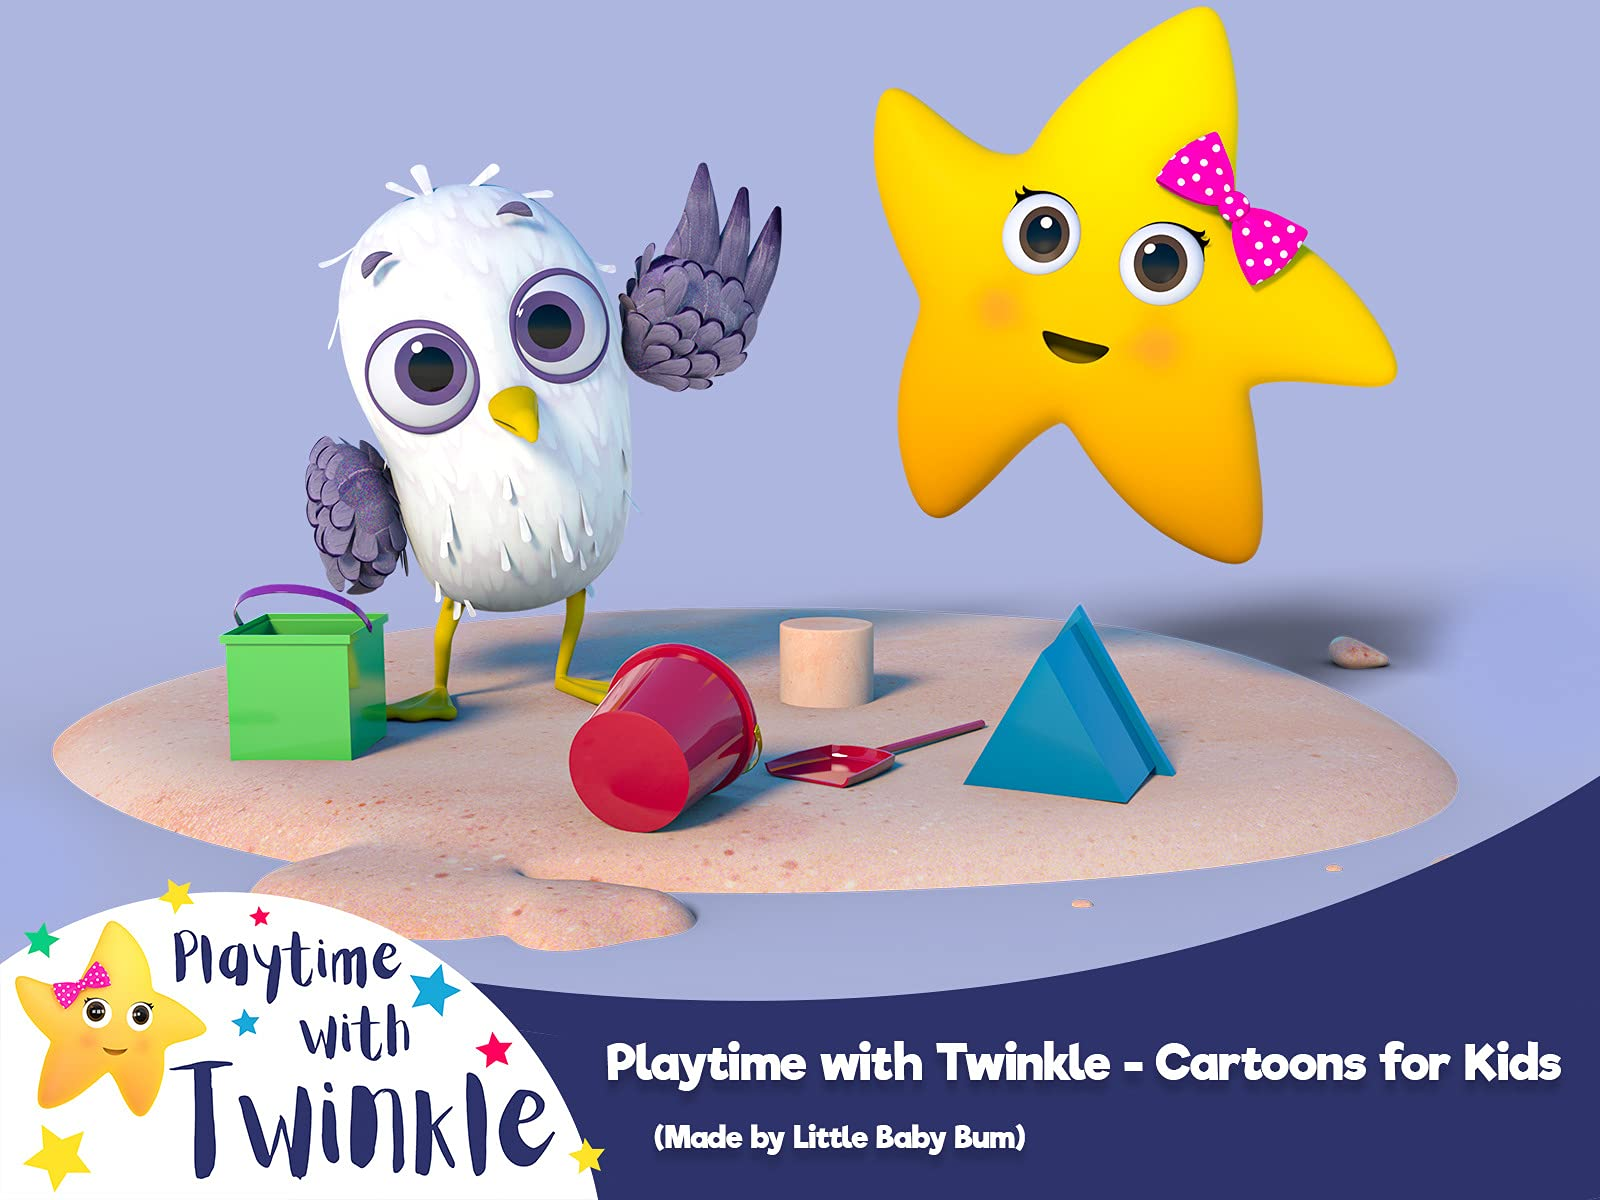 Playtime with Twinkle - Cartoons for Kids (Made by Little Baby Bum) on Amazon Prime Video UK